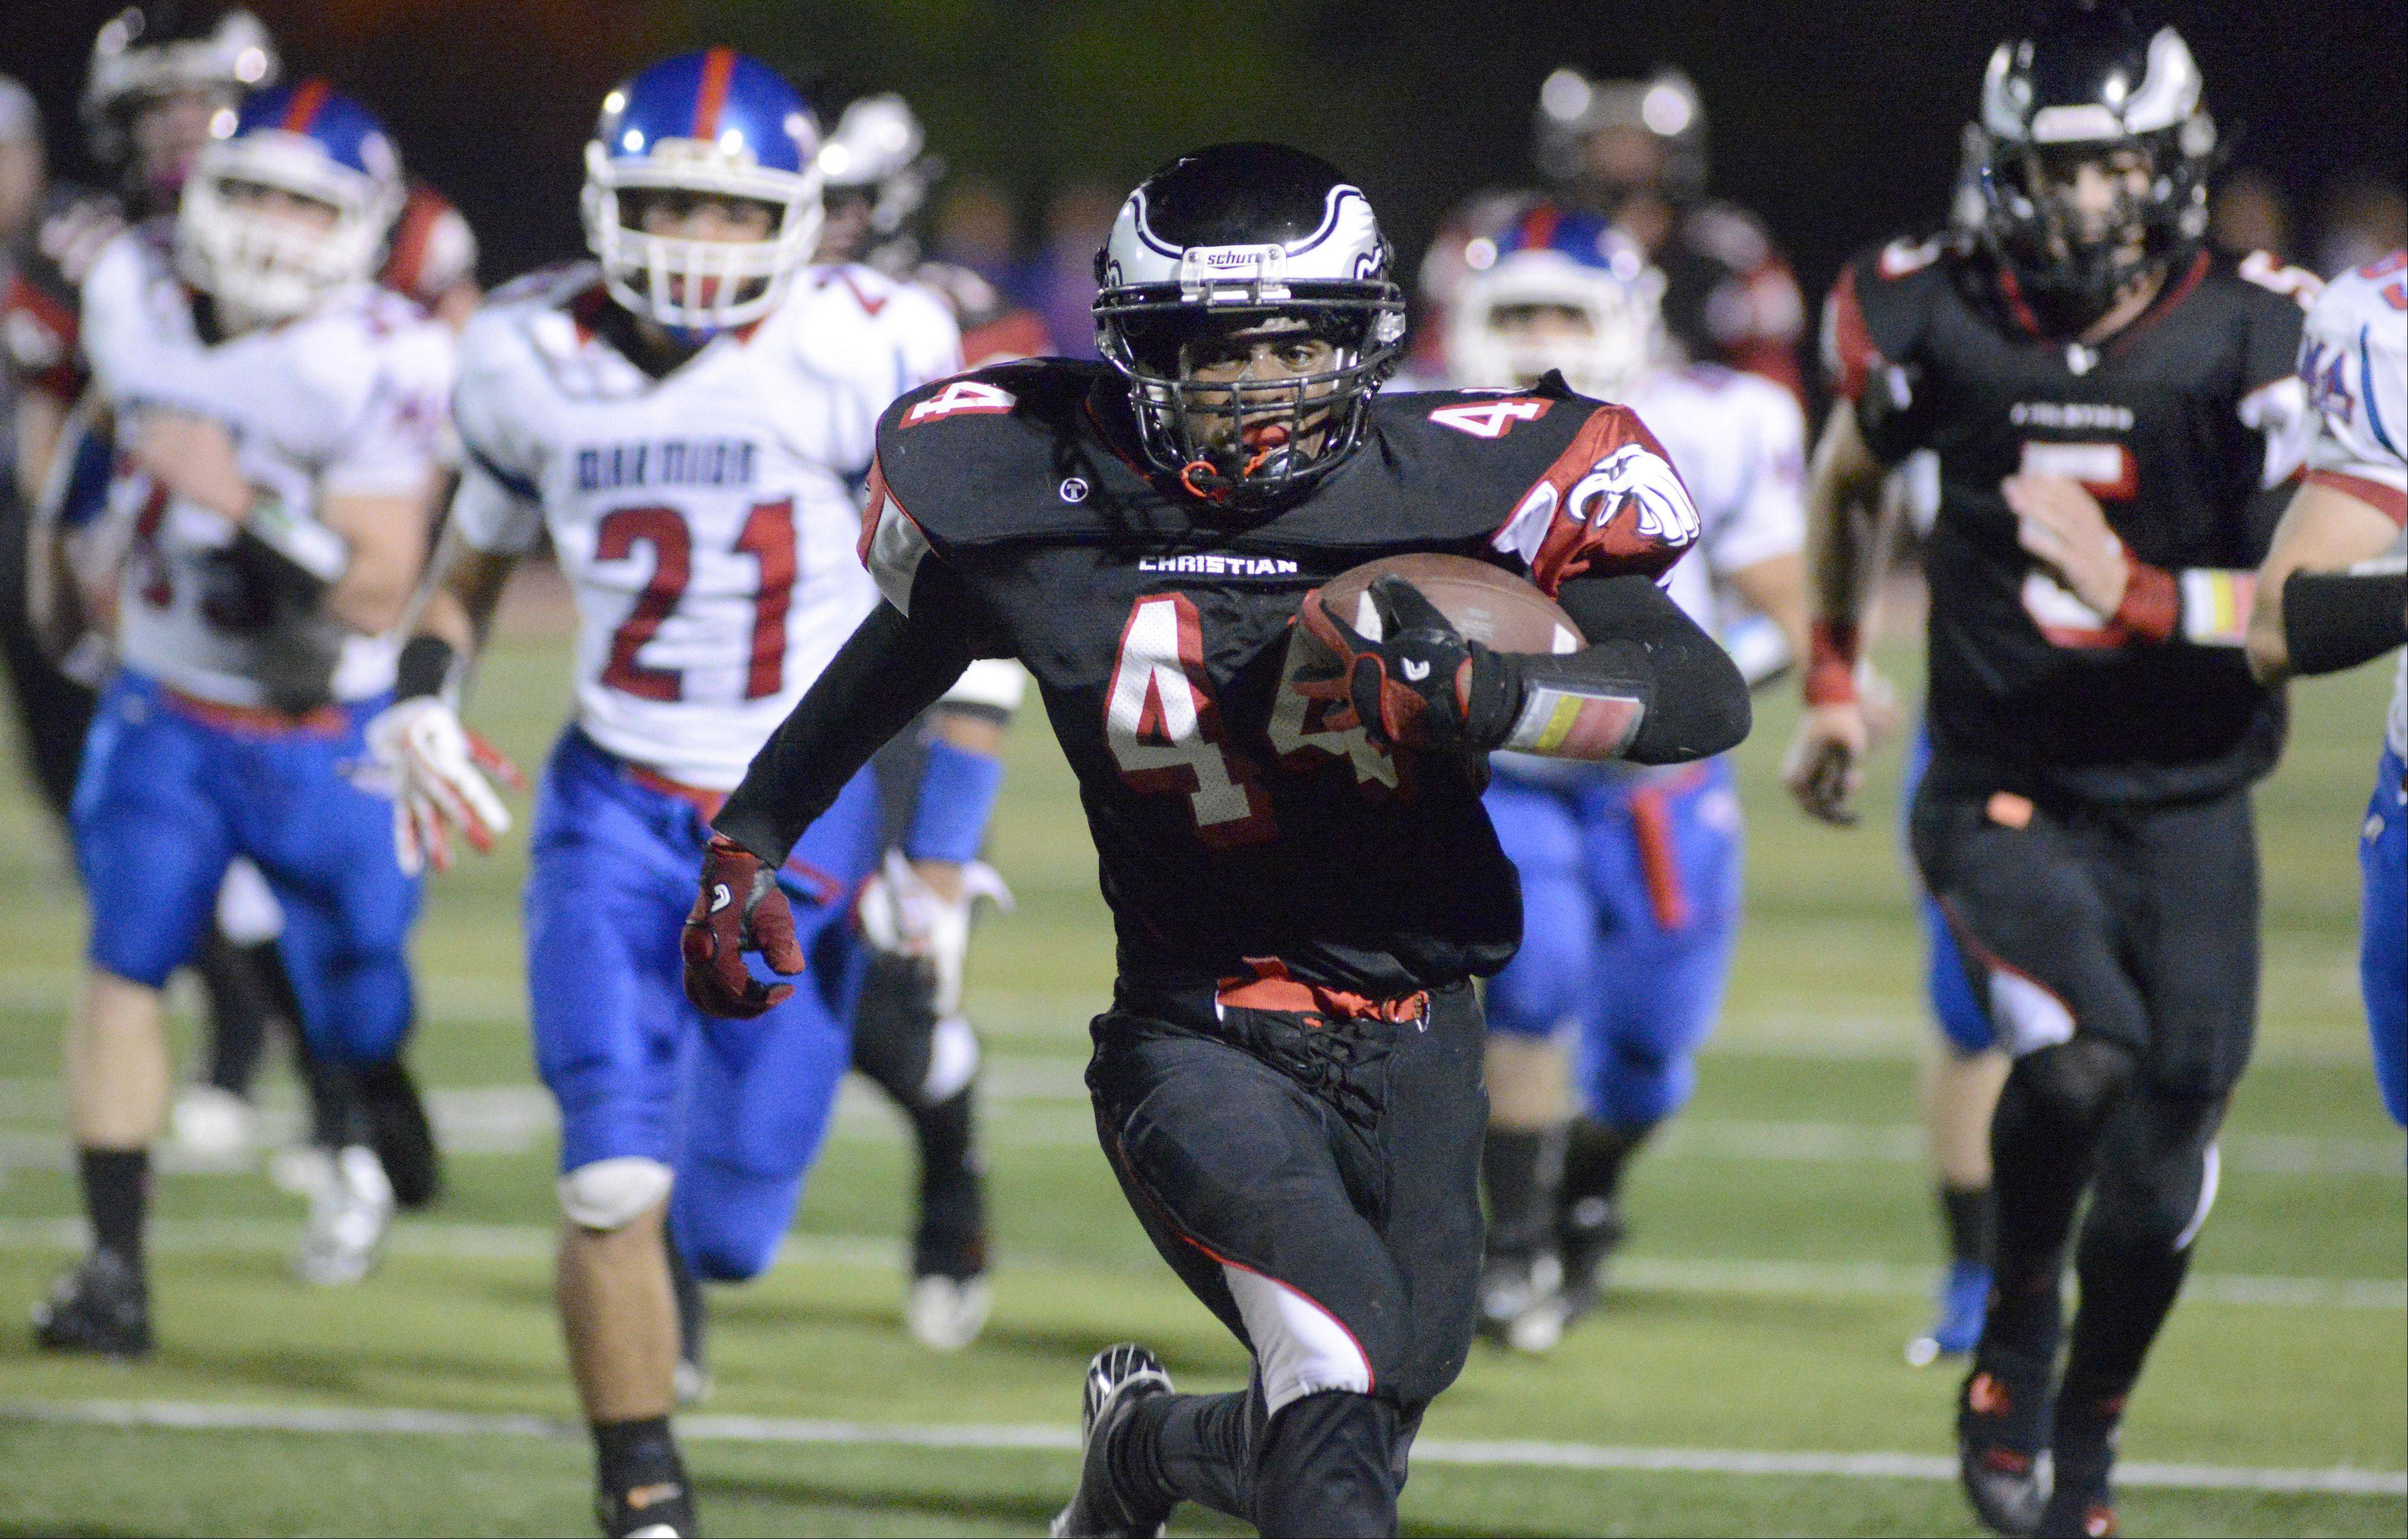 Aurora Christian�s Legend Smith sprints to the end zone in the second quarter on Friday, October 4.